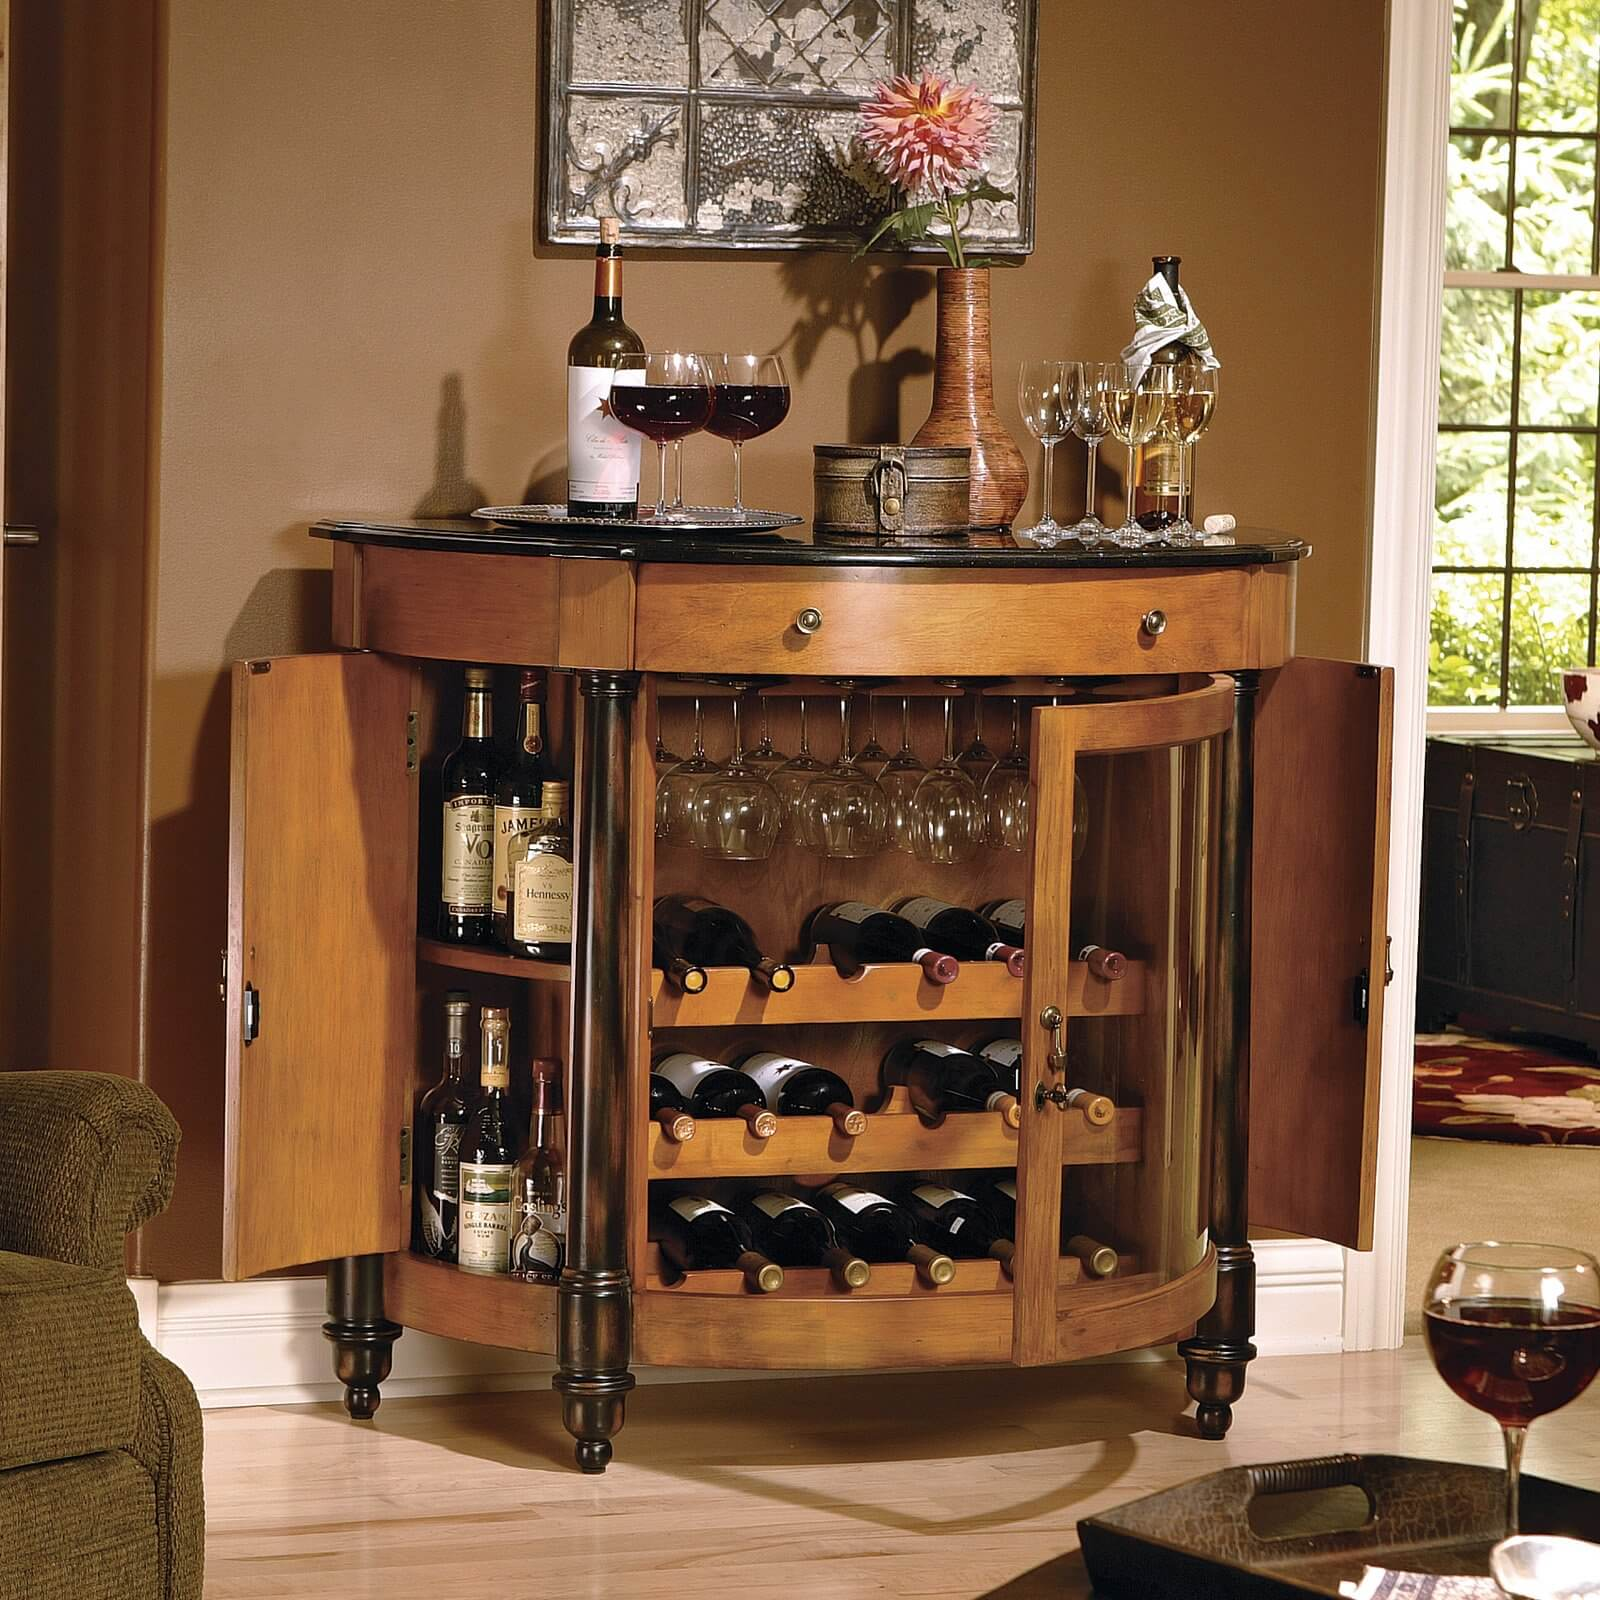 hereu0027s a home bar for wine lovers with itu0027s 18 bottle wine rack